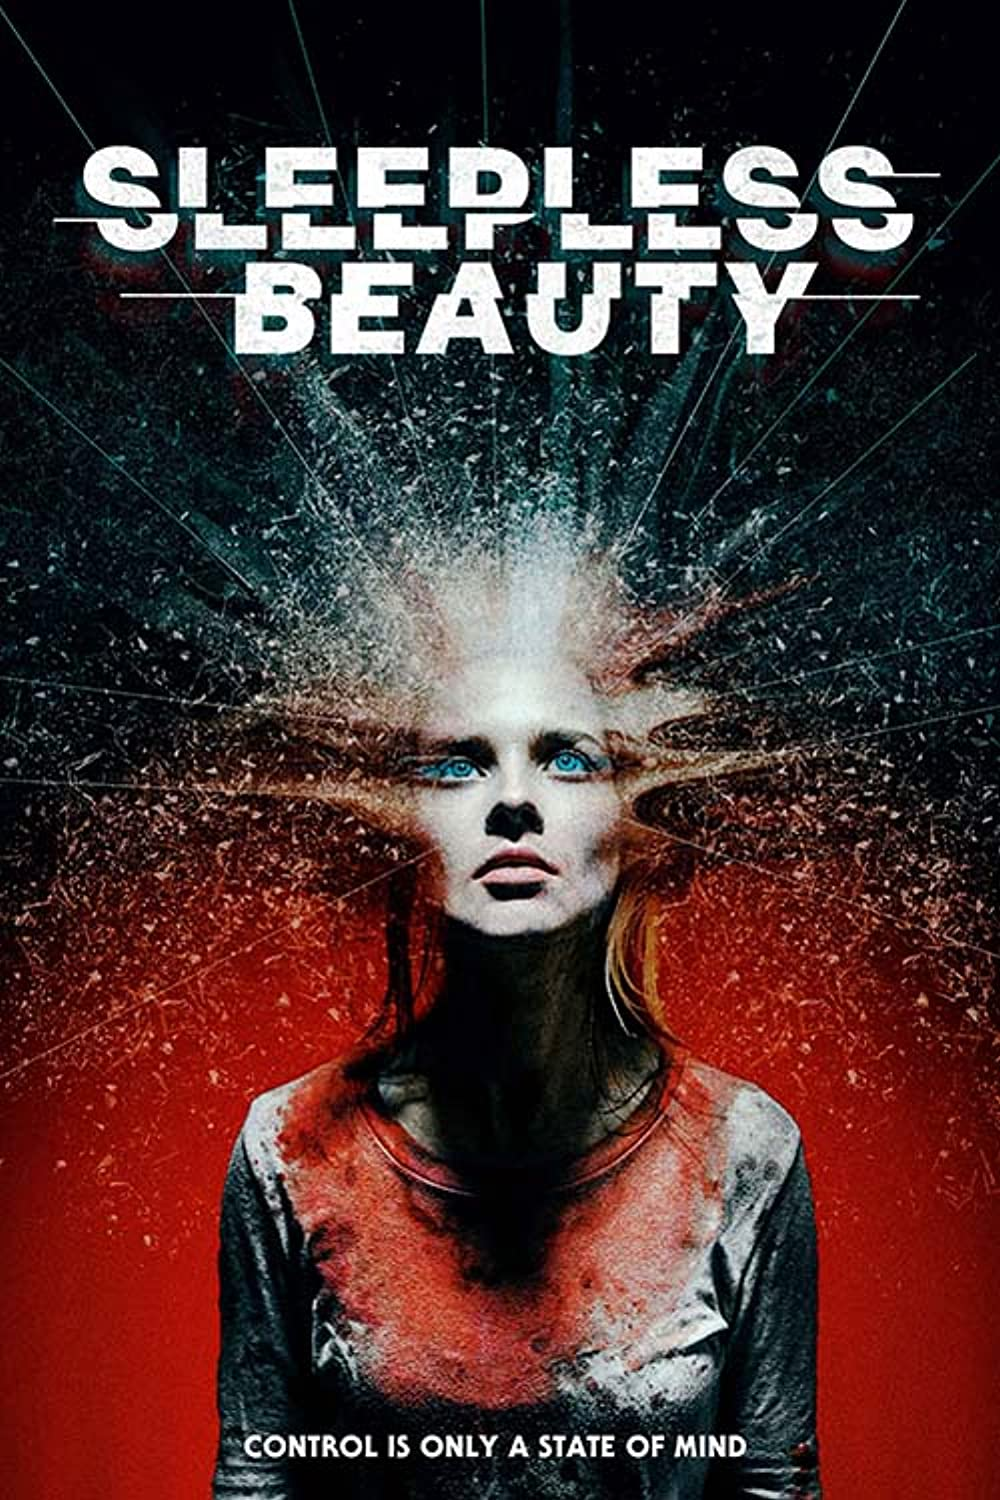 Download Sleepless Beauty 2020 Hindi Dual Audio 720p UNRATED HDRip ESubs 900MB